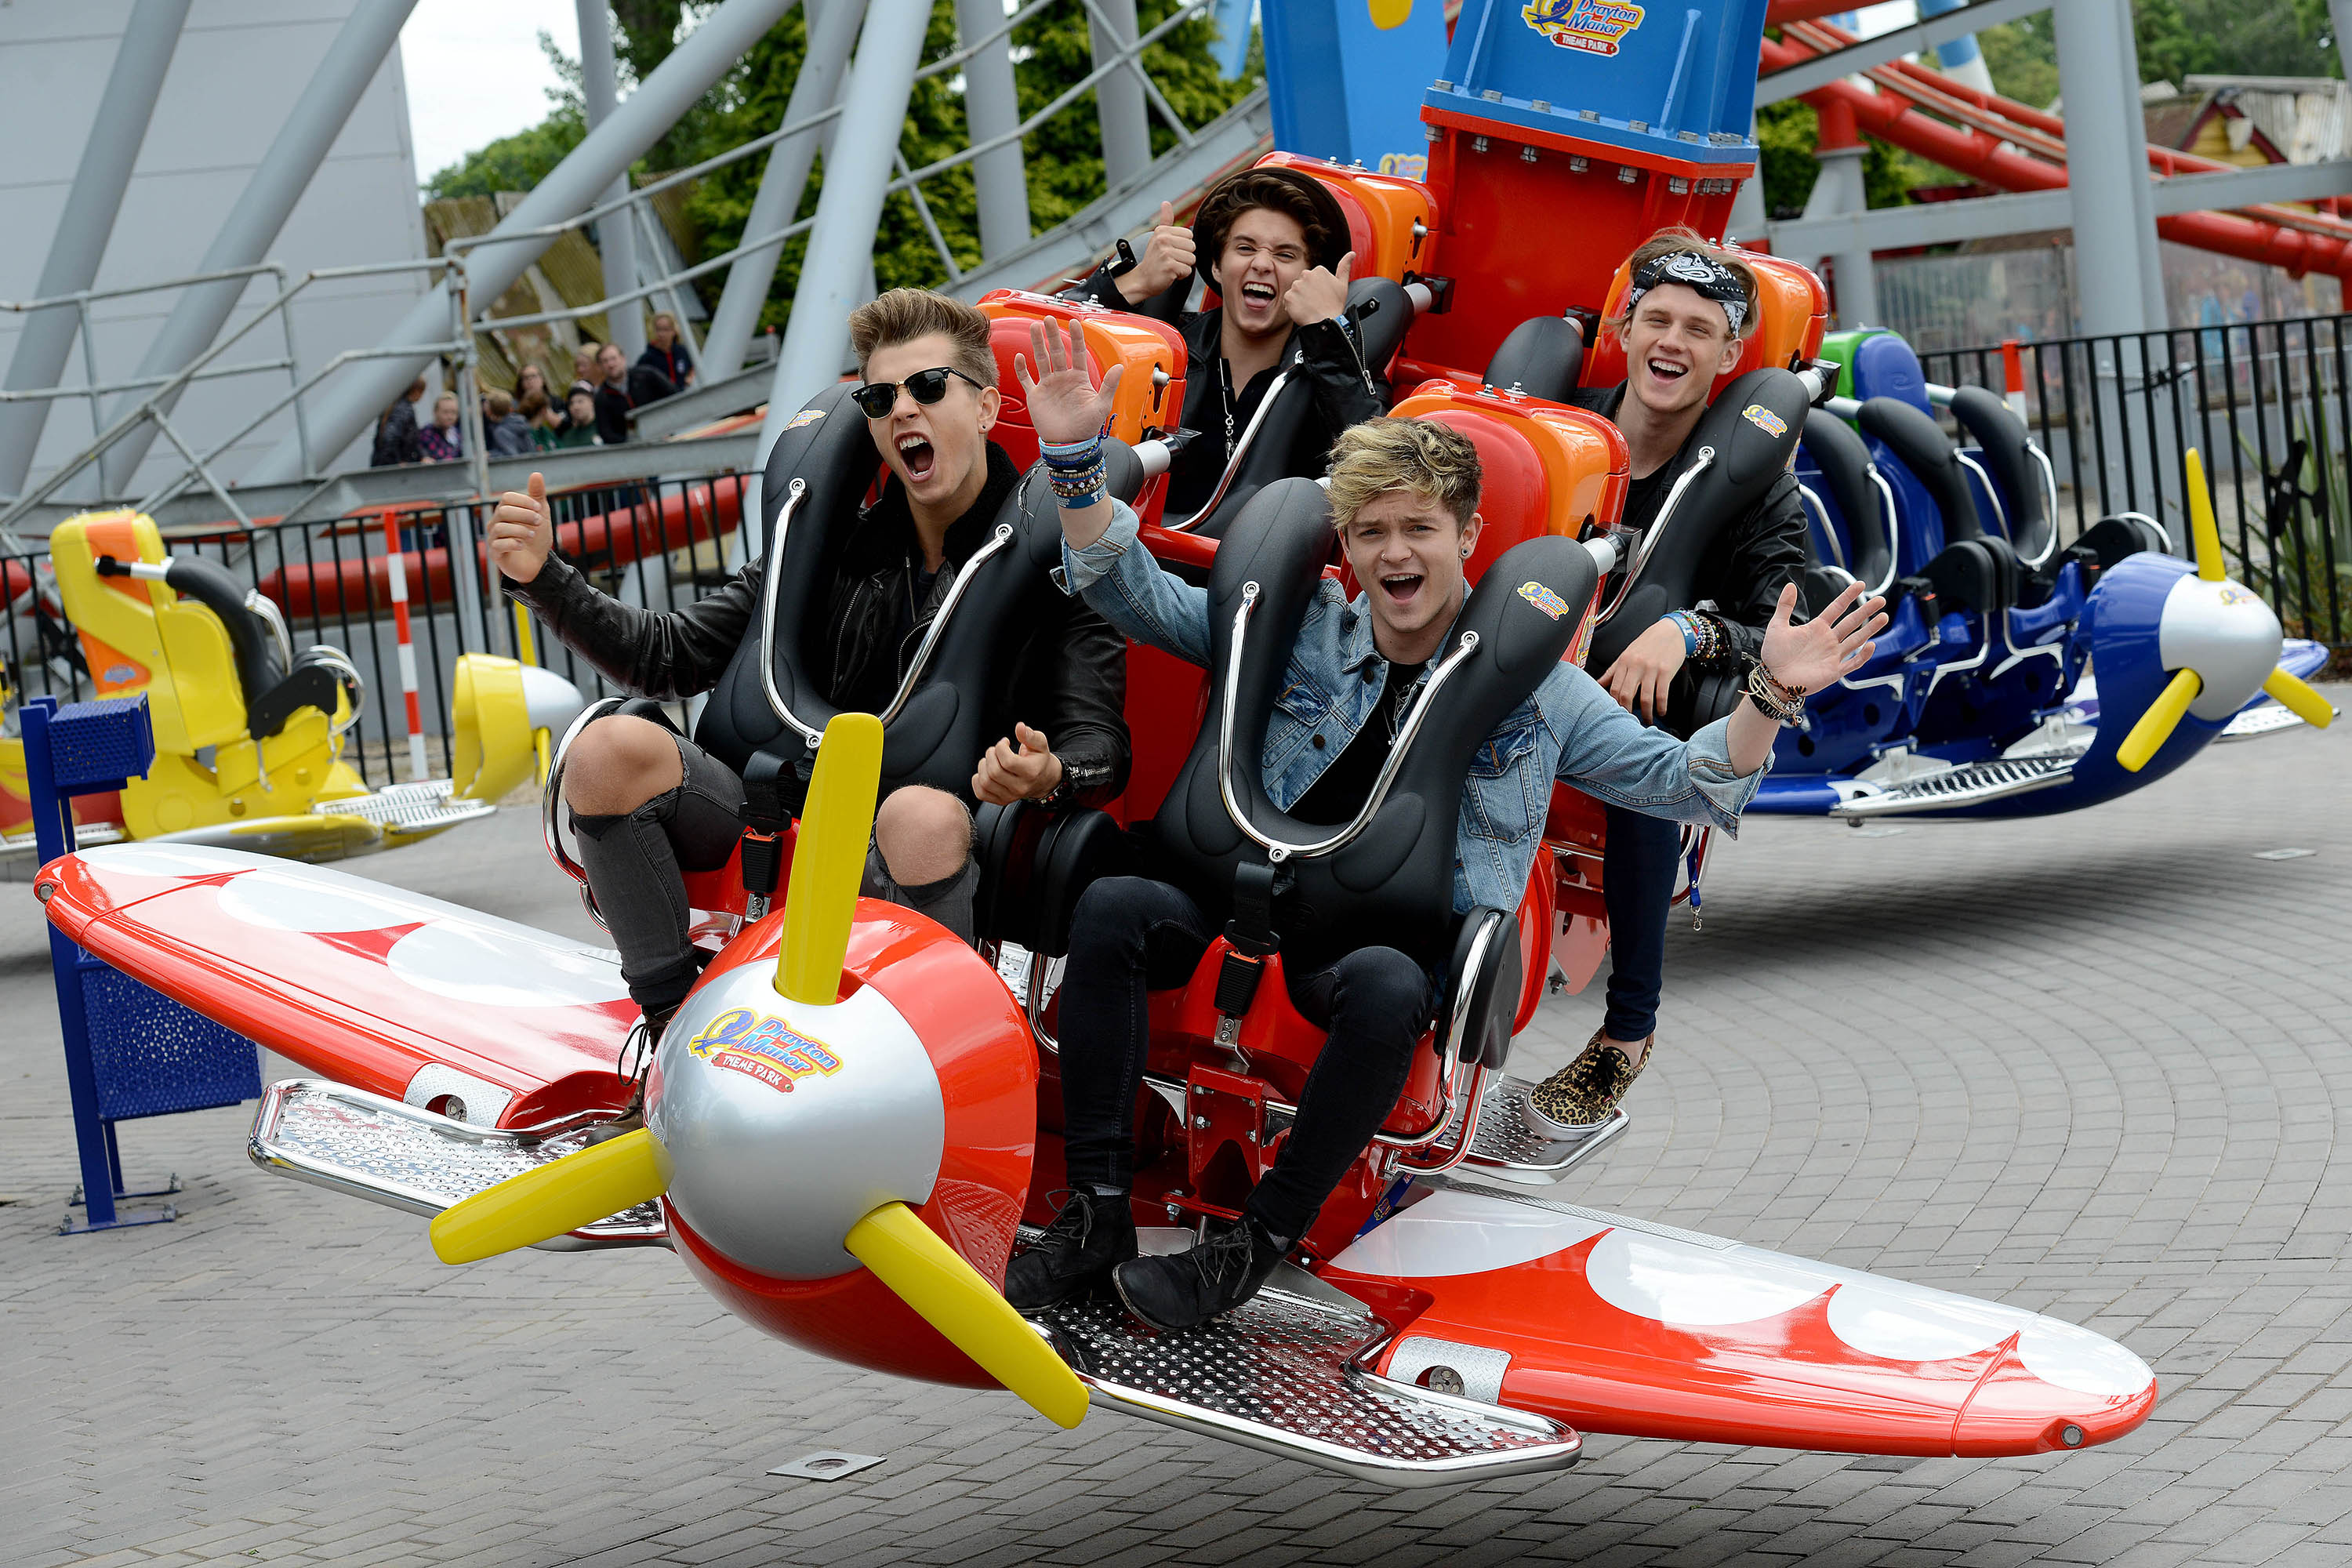 3d Wallpaper Gyro Drayton Manor Theme Park S New Ride Air Race Which Was